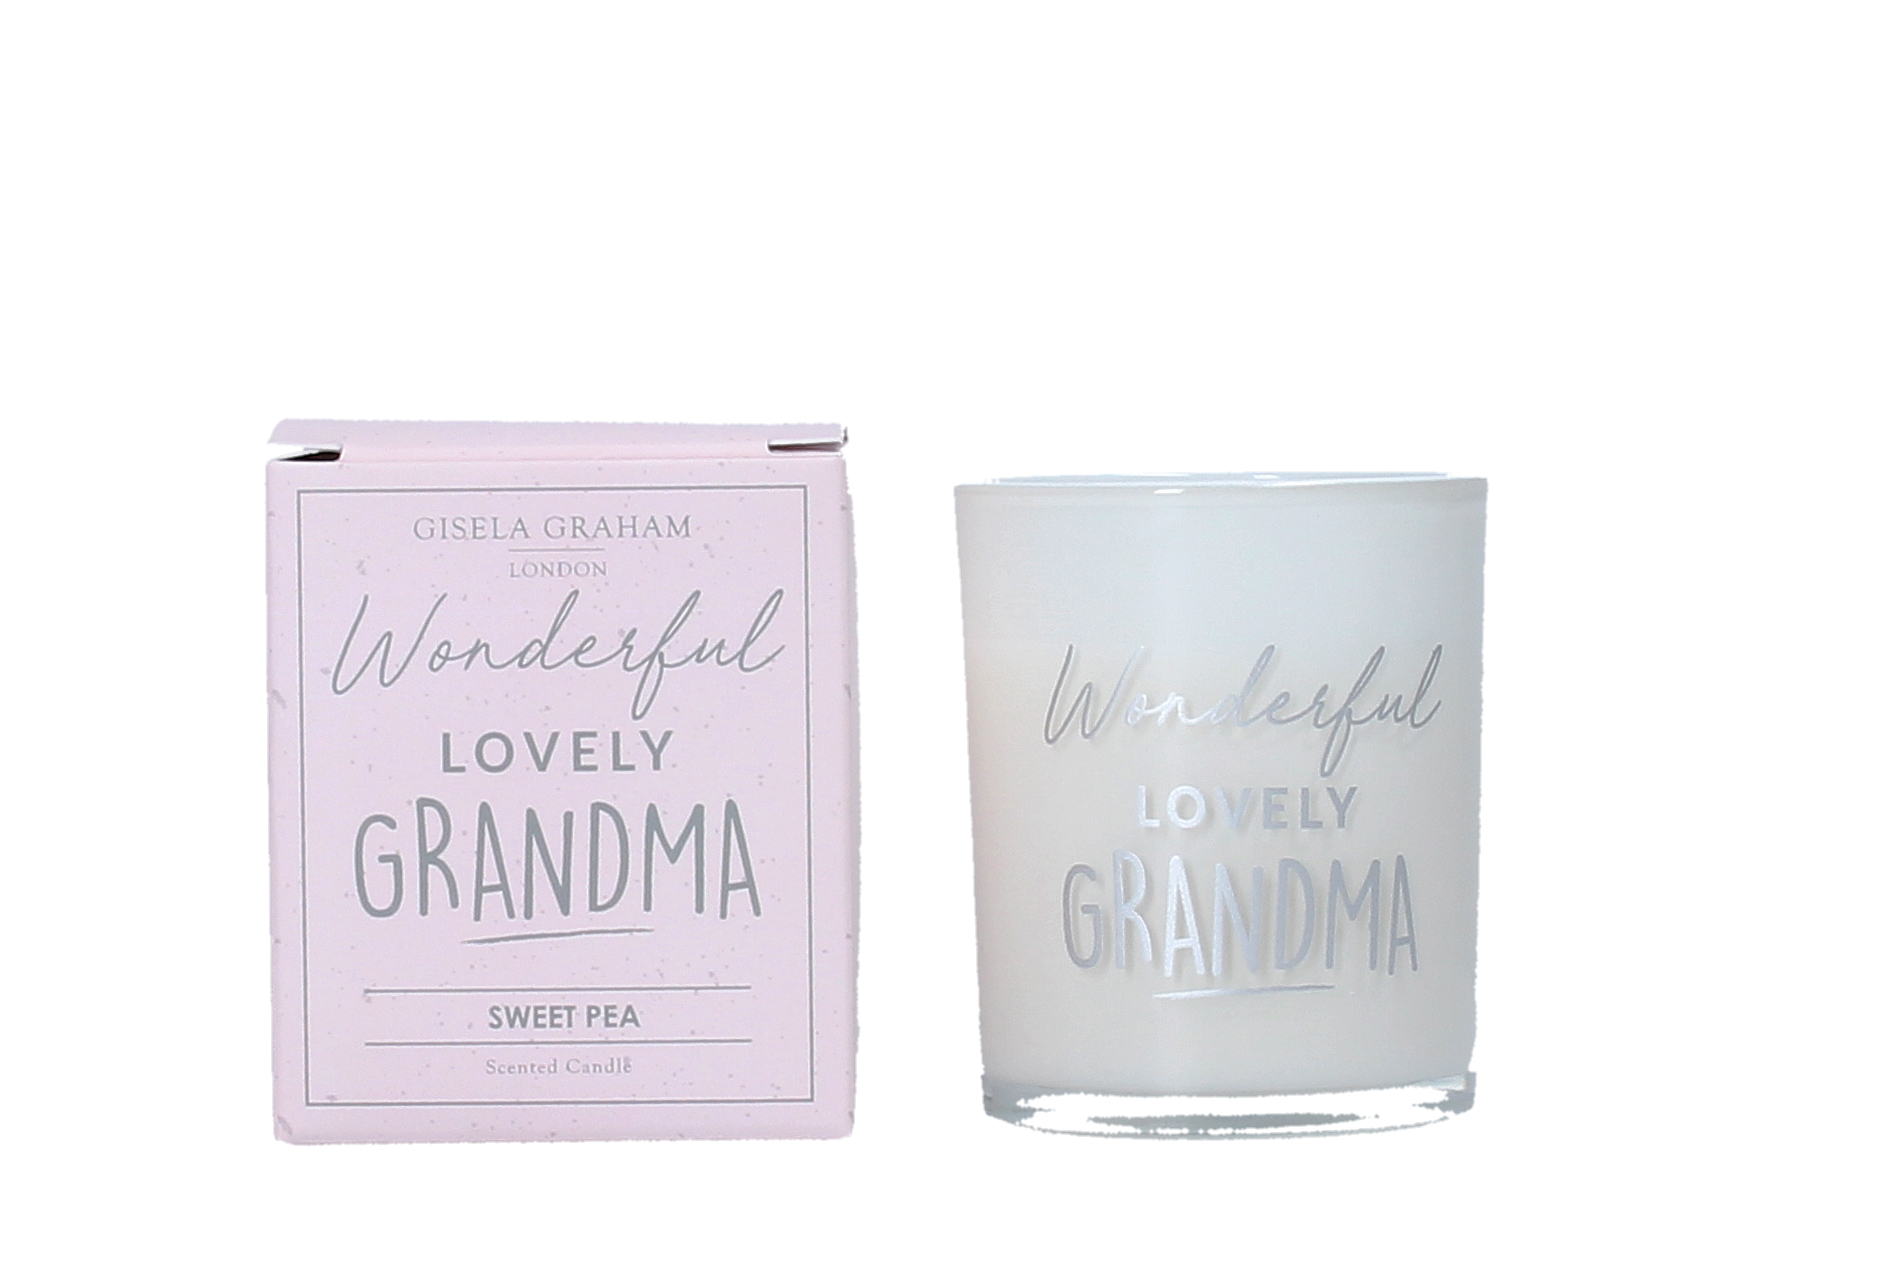 Gisela Graham 'Wonderful Lovely Grandma' Candle